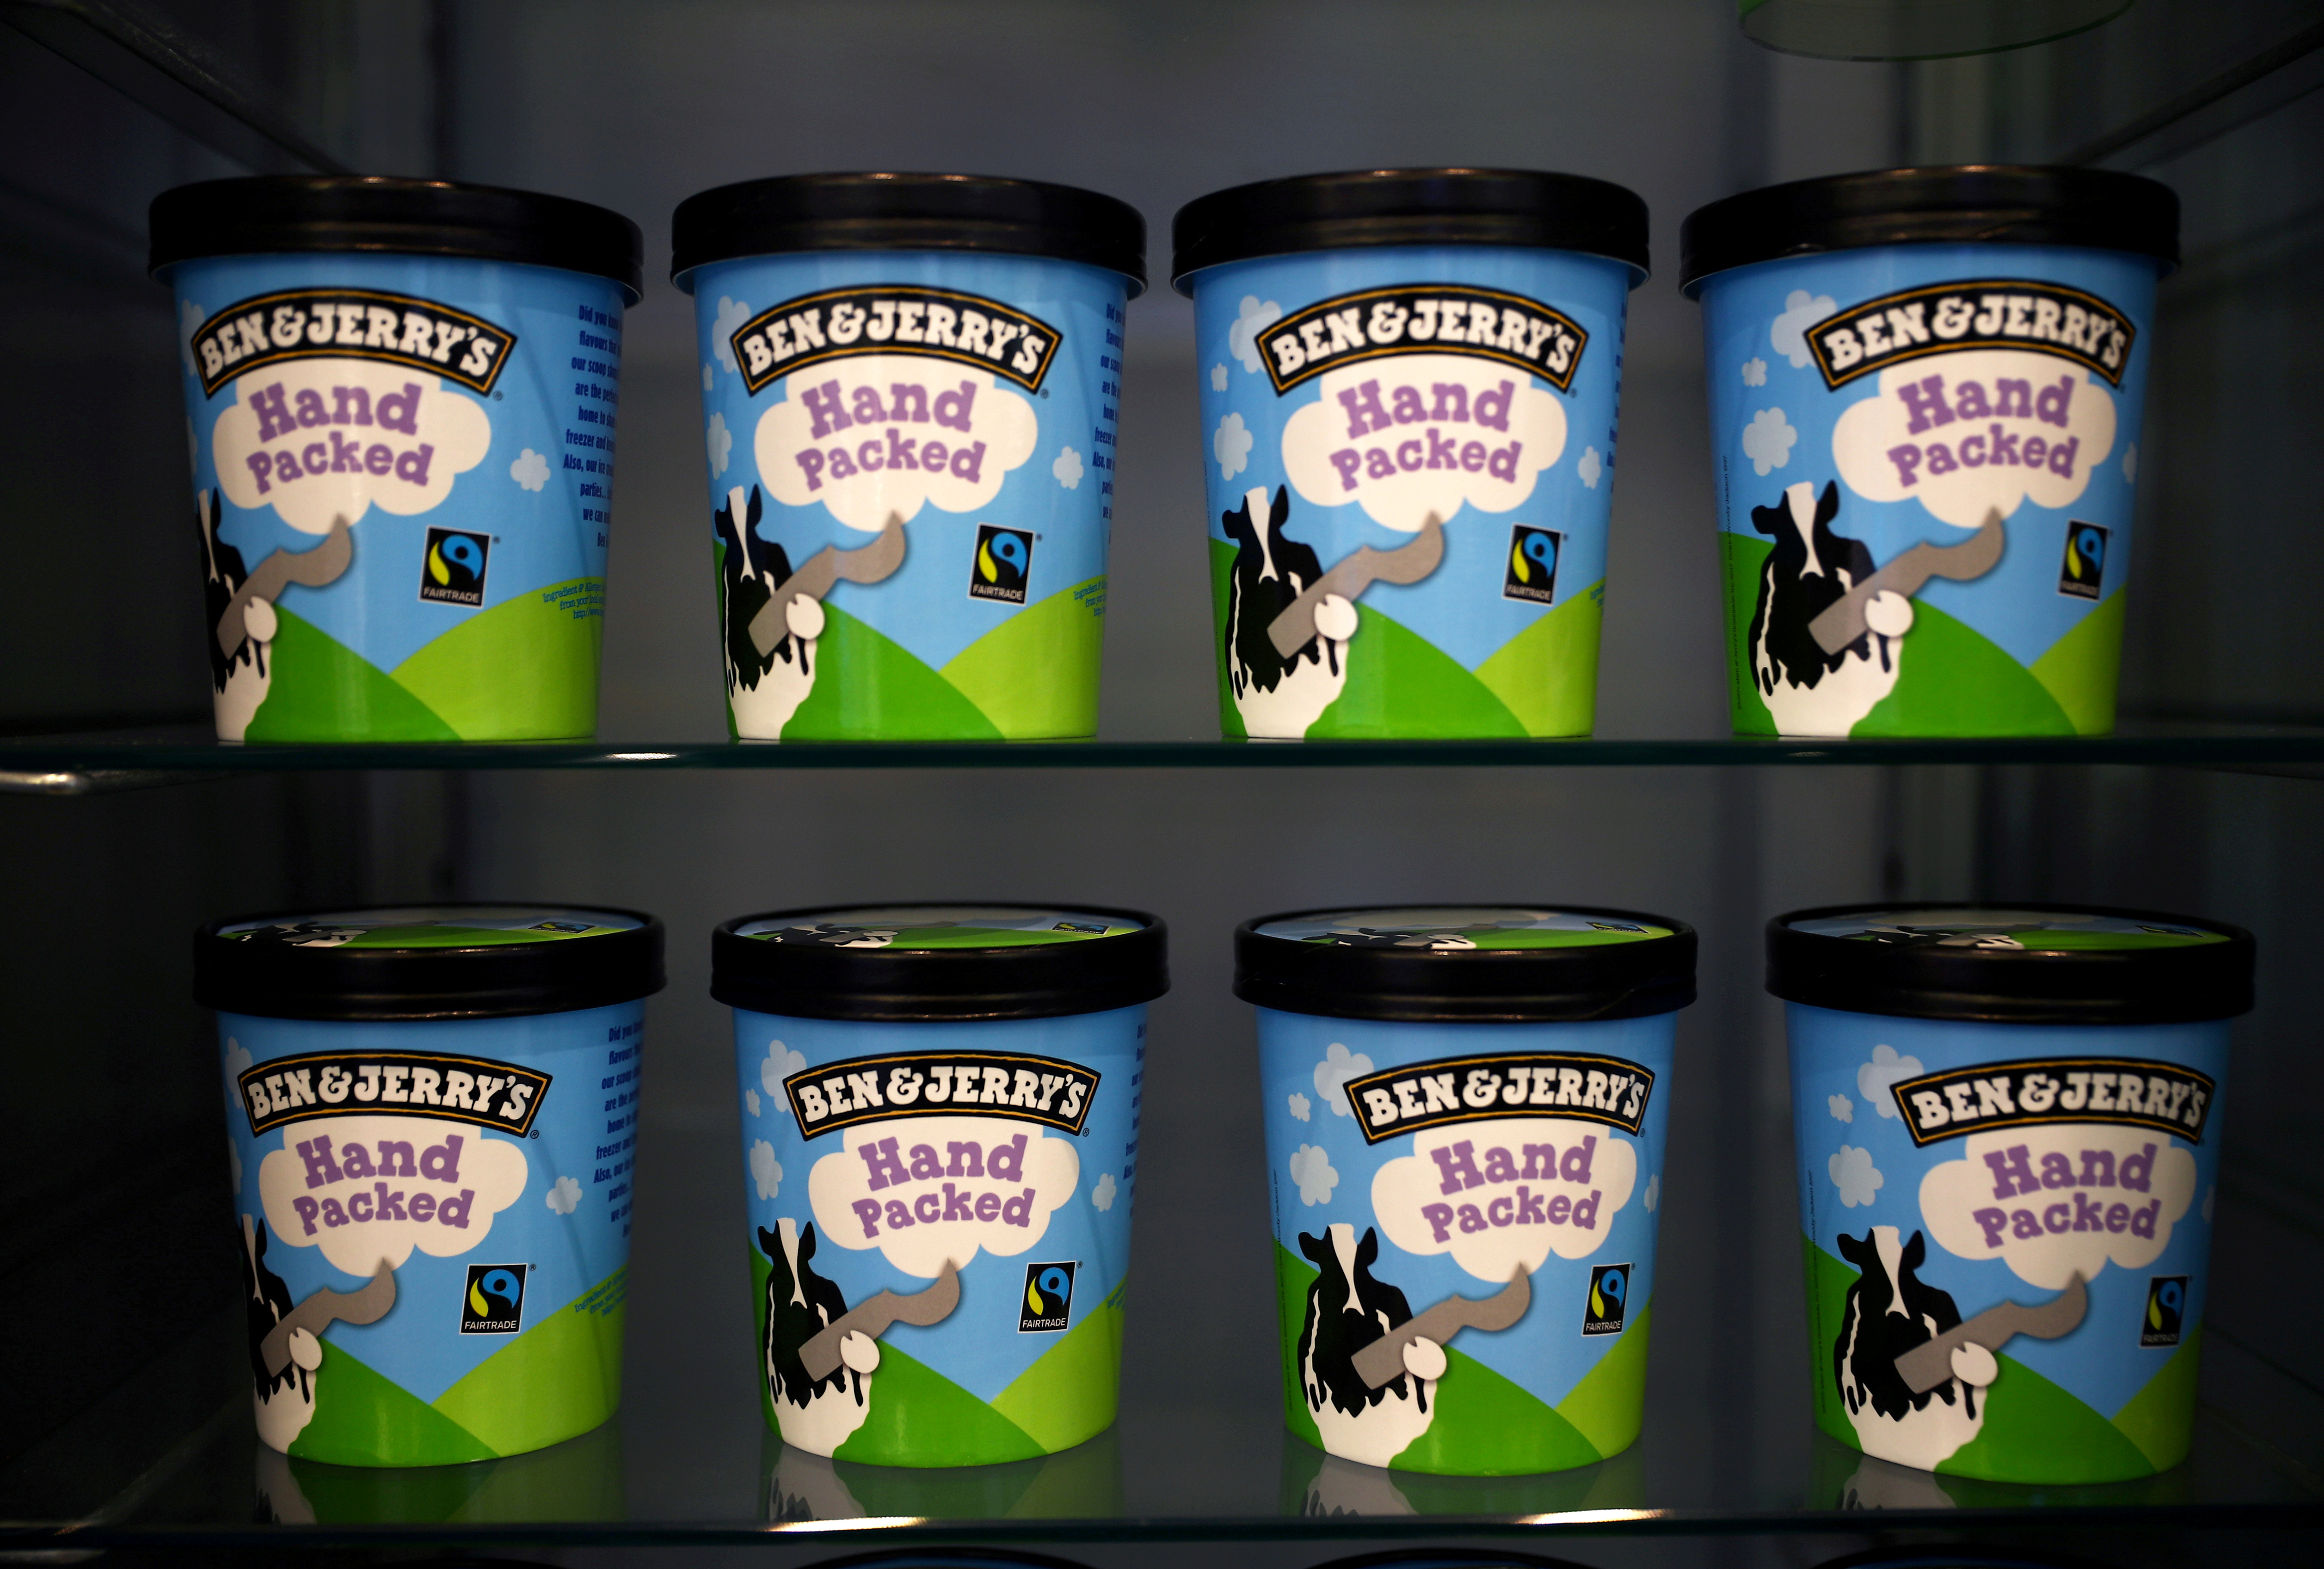 Tubs of Ben & Jerry's ice cream, a Unilever brand, are seen at their shop in London, Britain, October 5, 2020. REUTERS/Hannah McKay